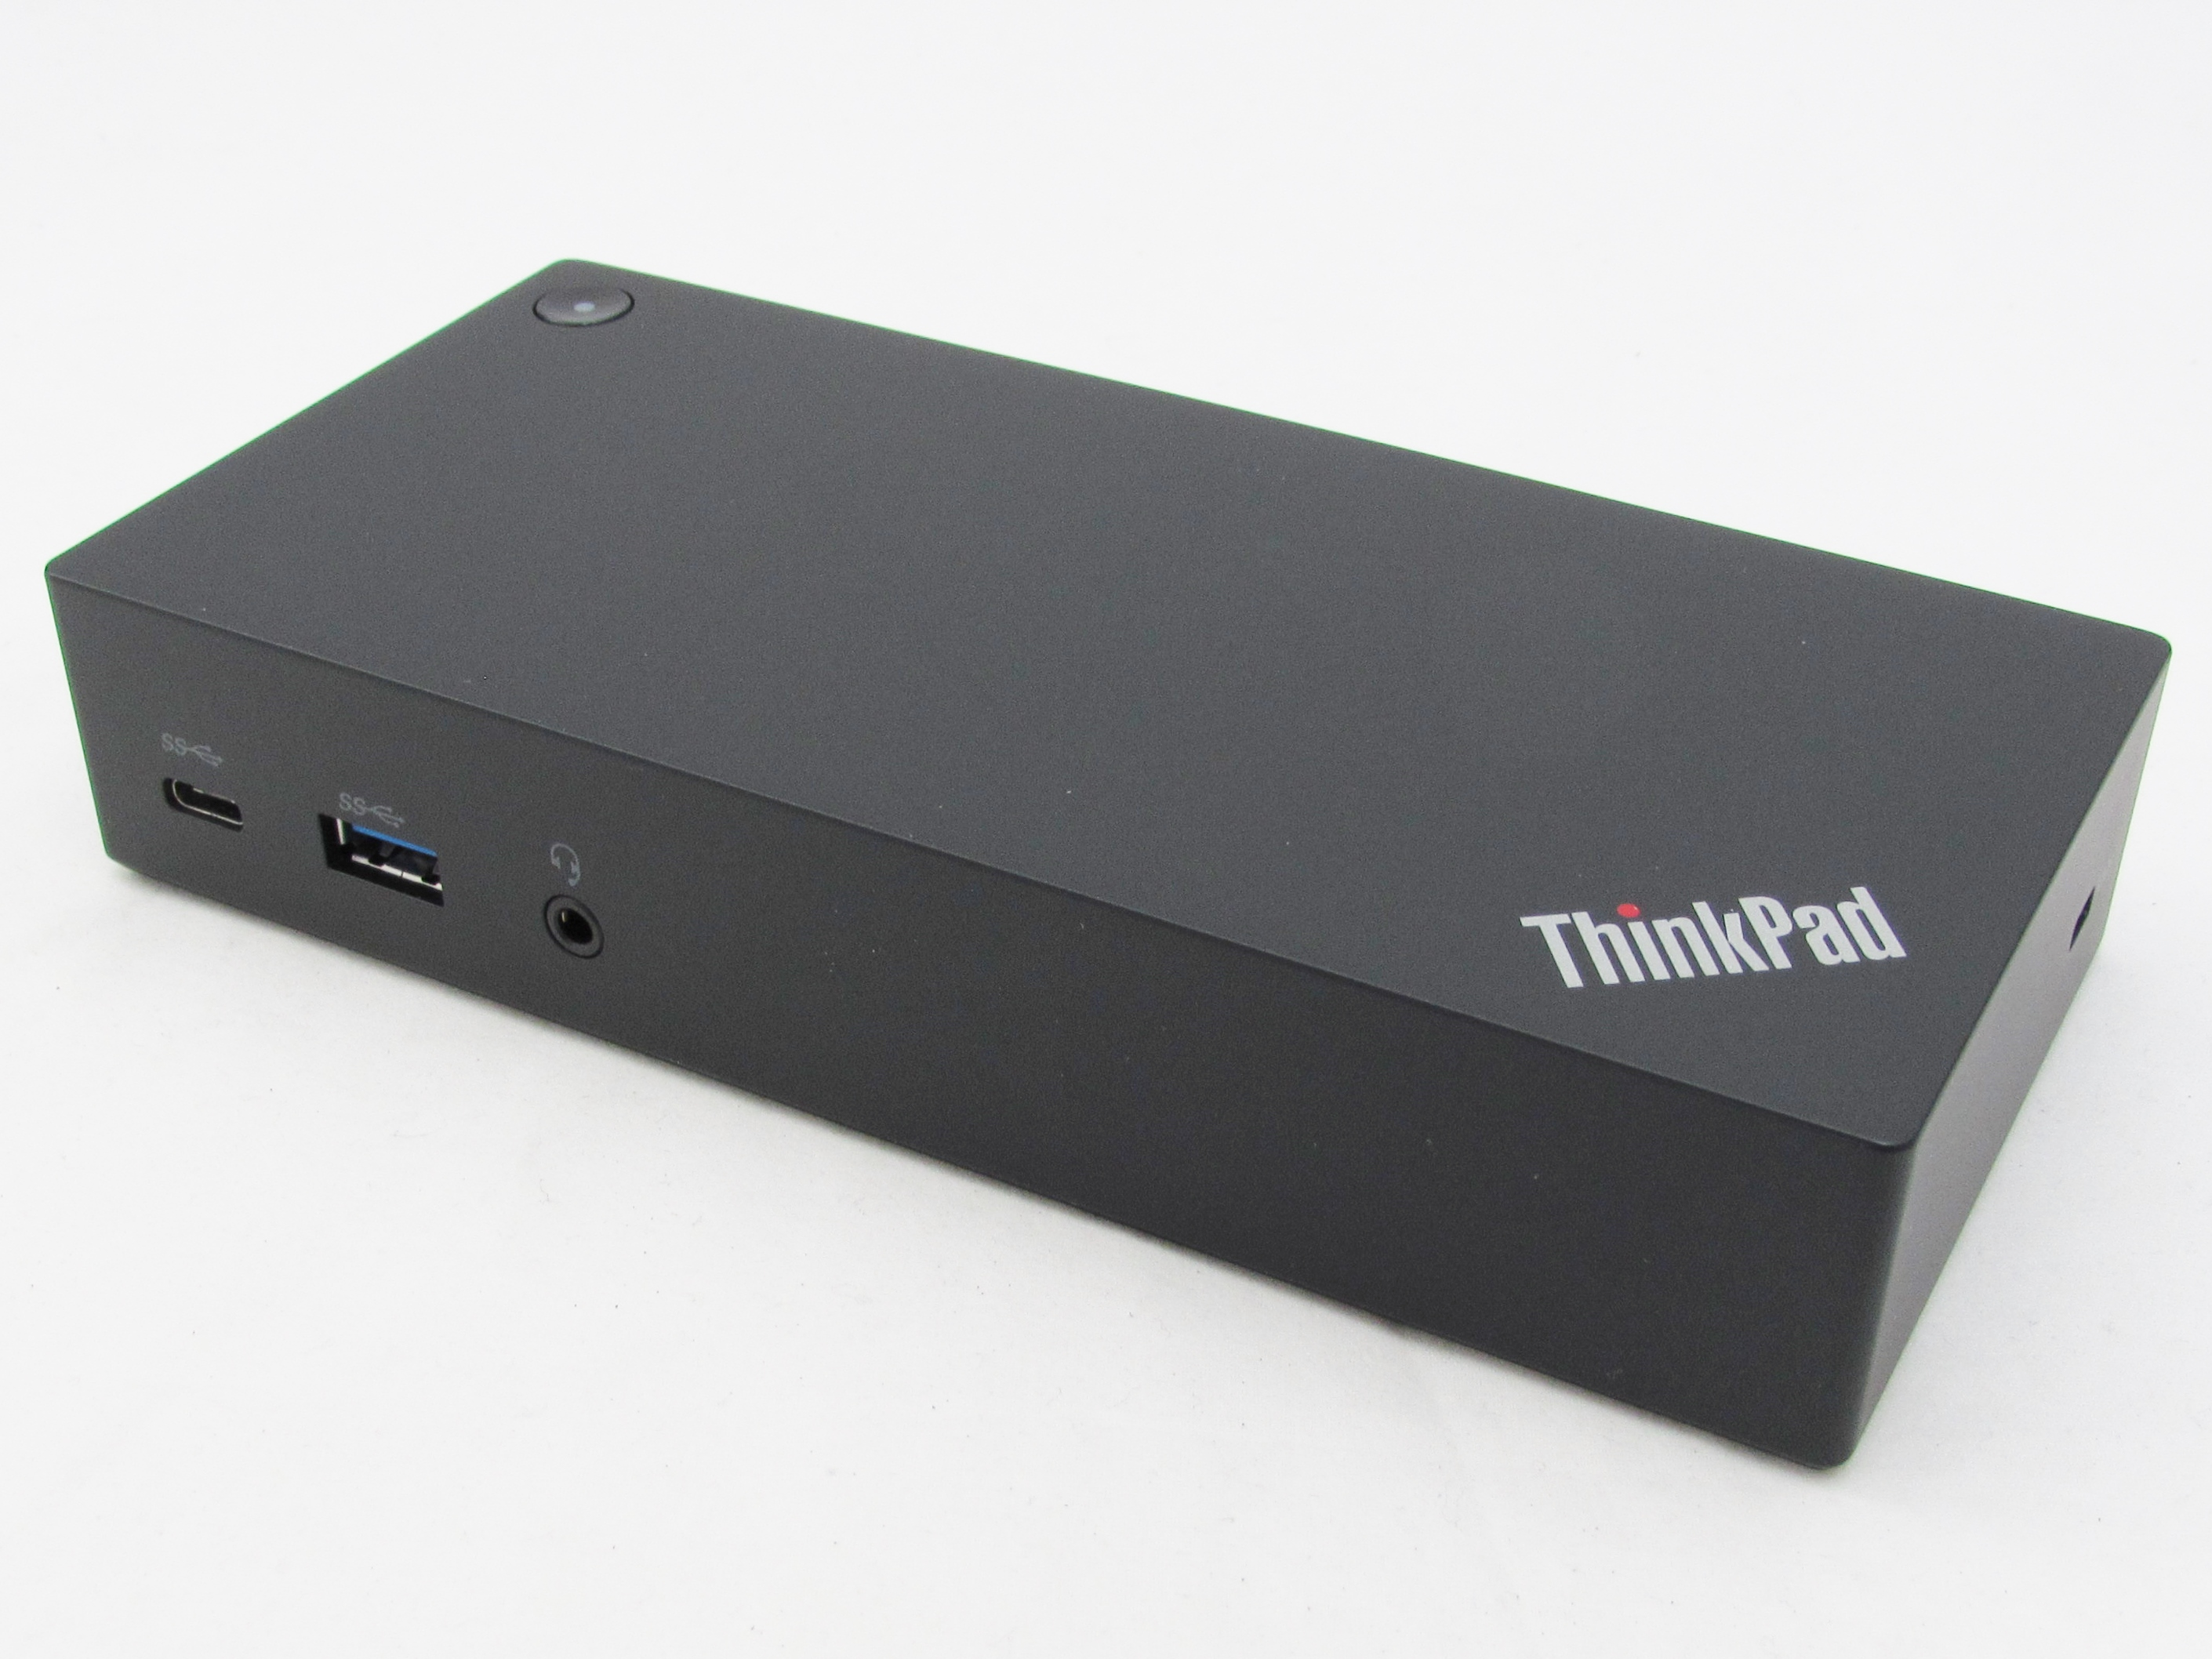 new lenovo thinkpad usb c dock docking station inc psu. Black Bedroom Furniture Sets. Home Design Ideas